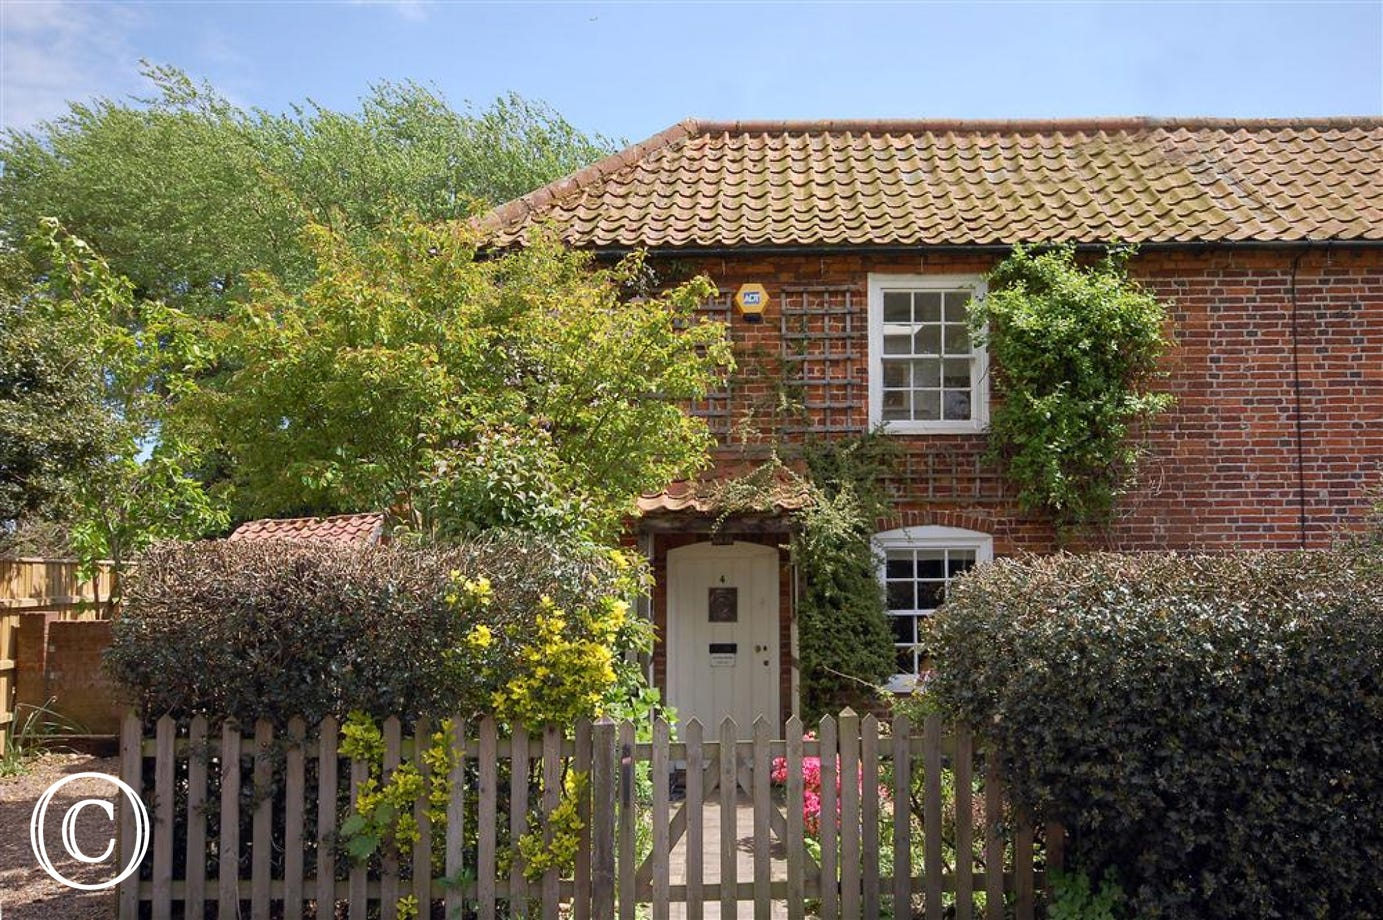 This pretty property is situated in the village of Reydon the close by neighbour of Southwold, the property offers characterful accommodation for 6 people with parking and courtyard areas.